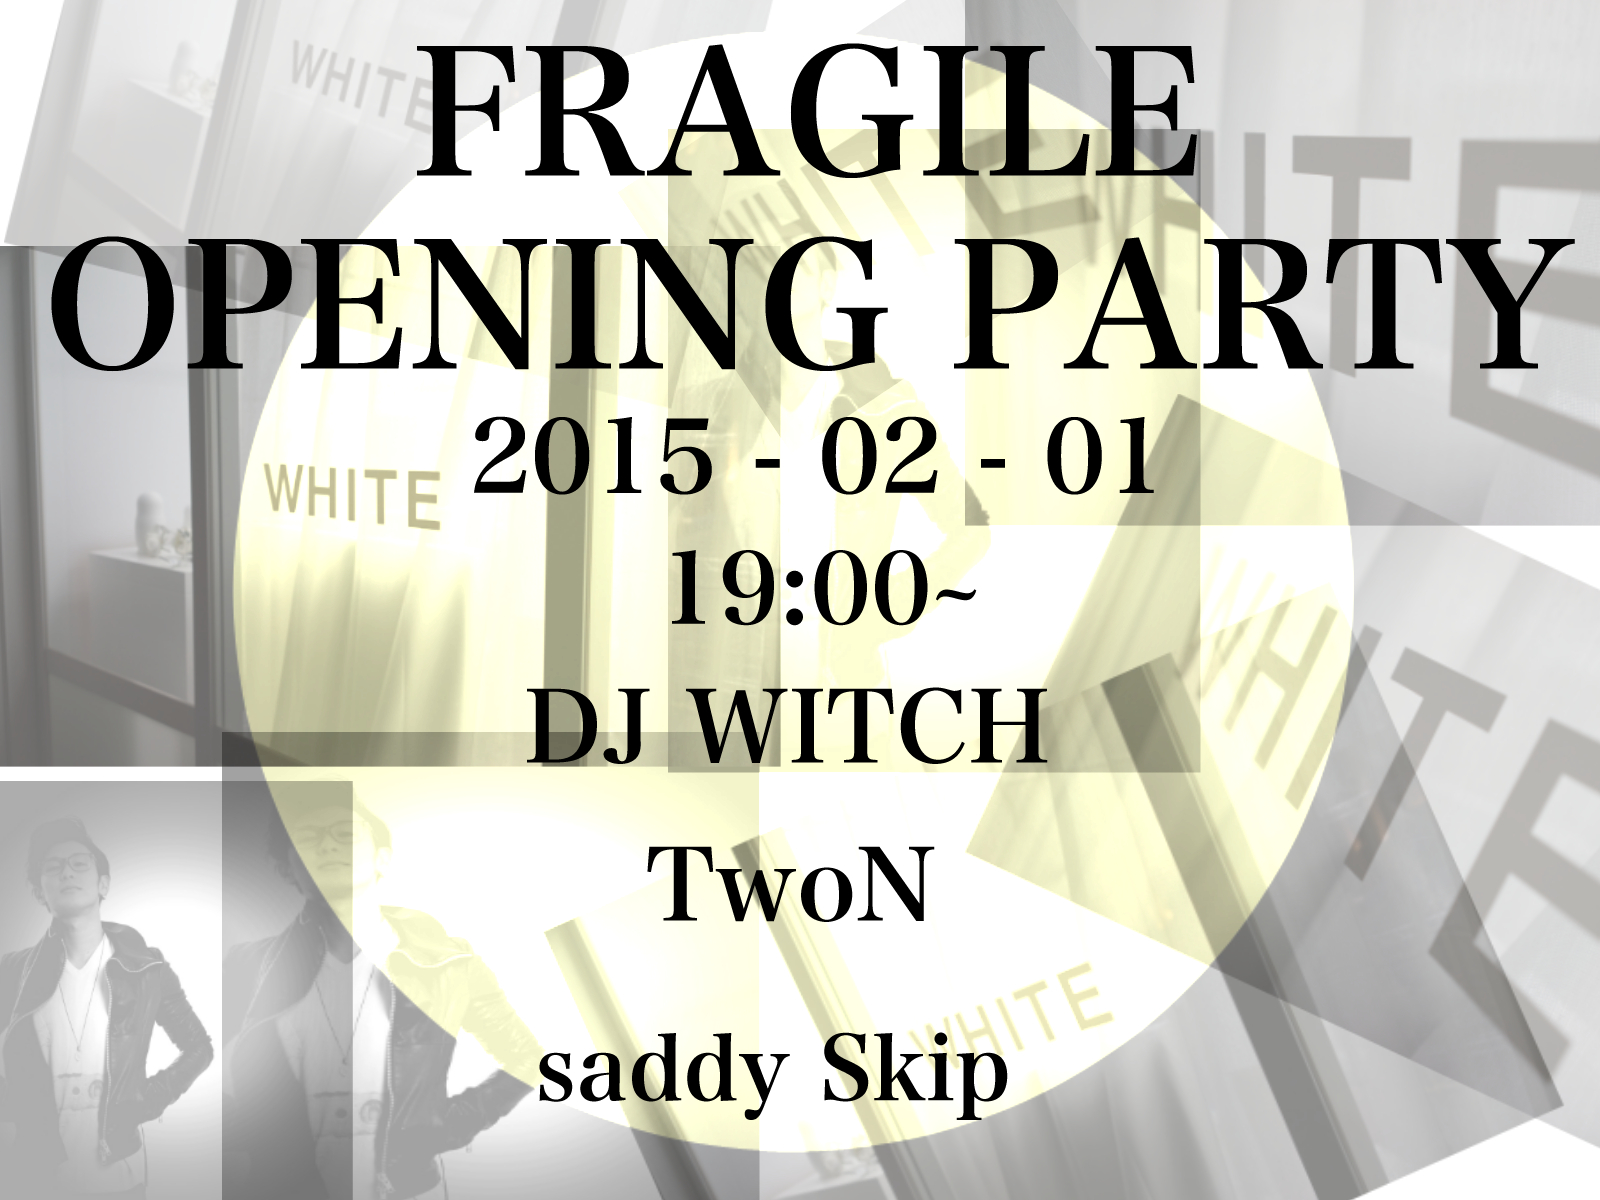 FRAGILE OPENING PARTY